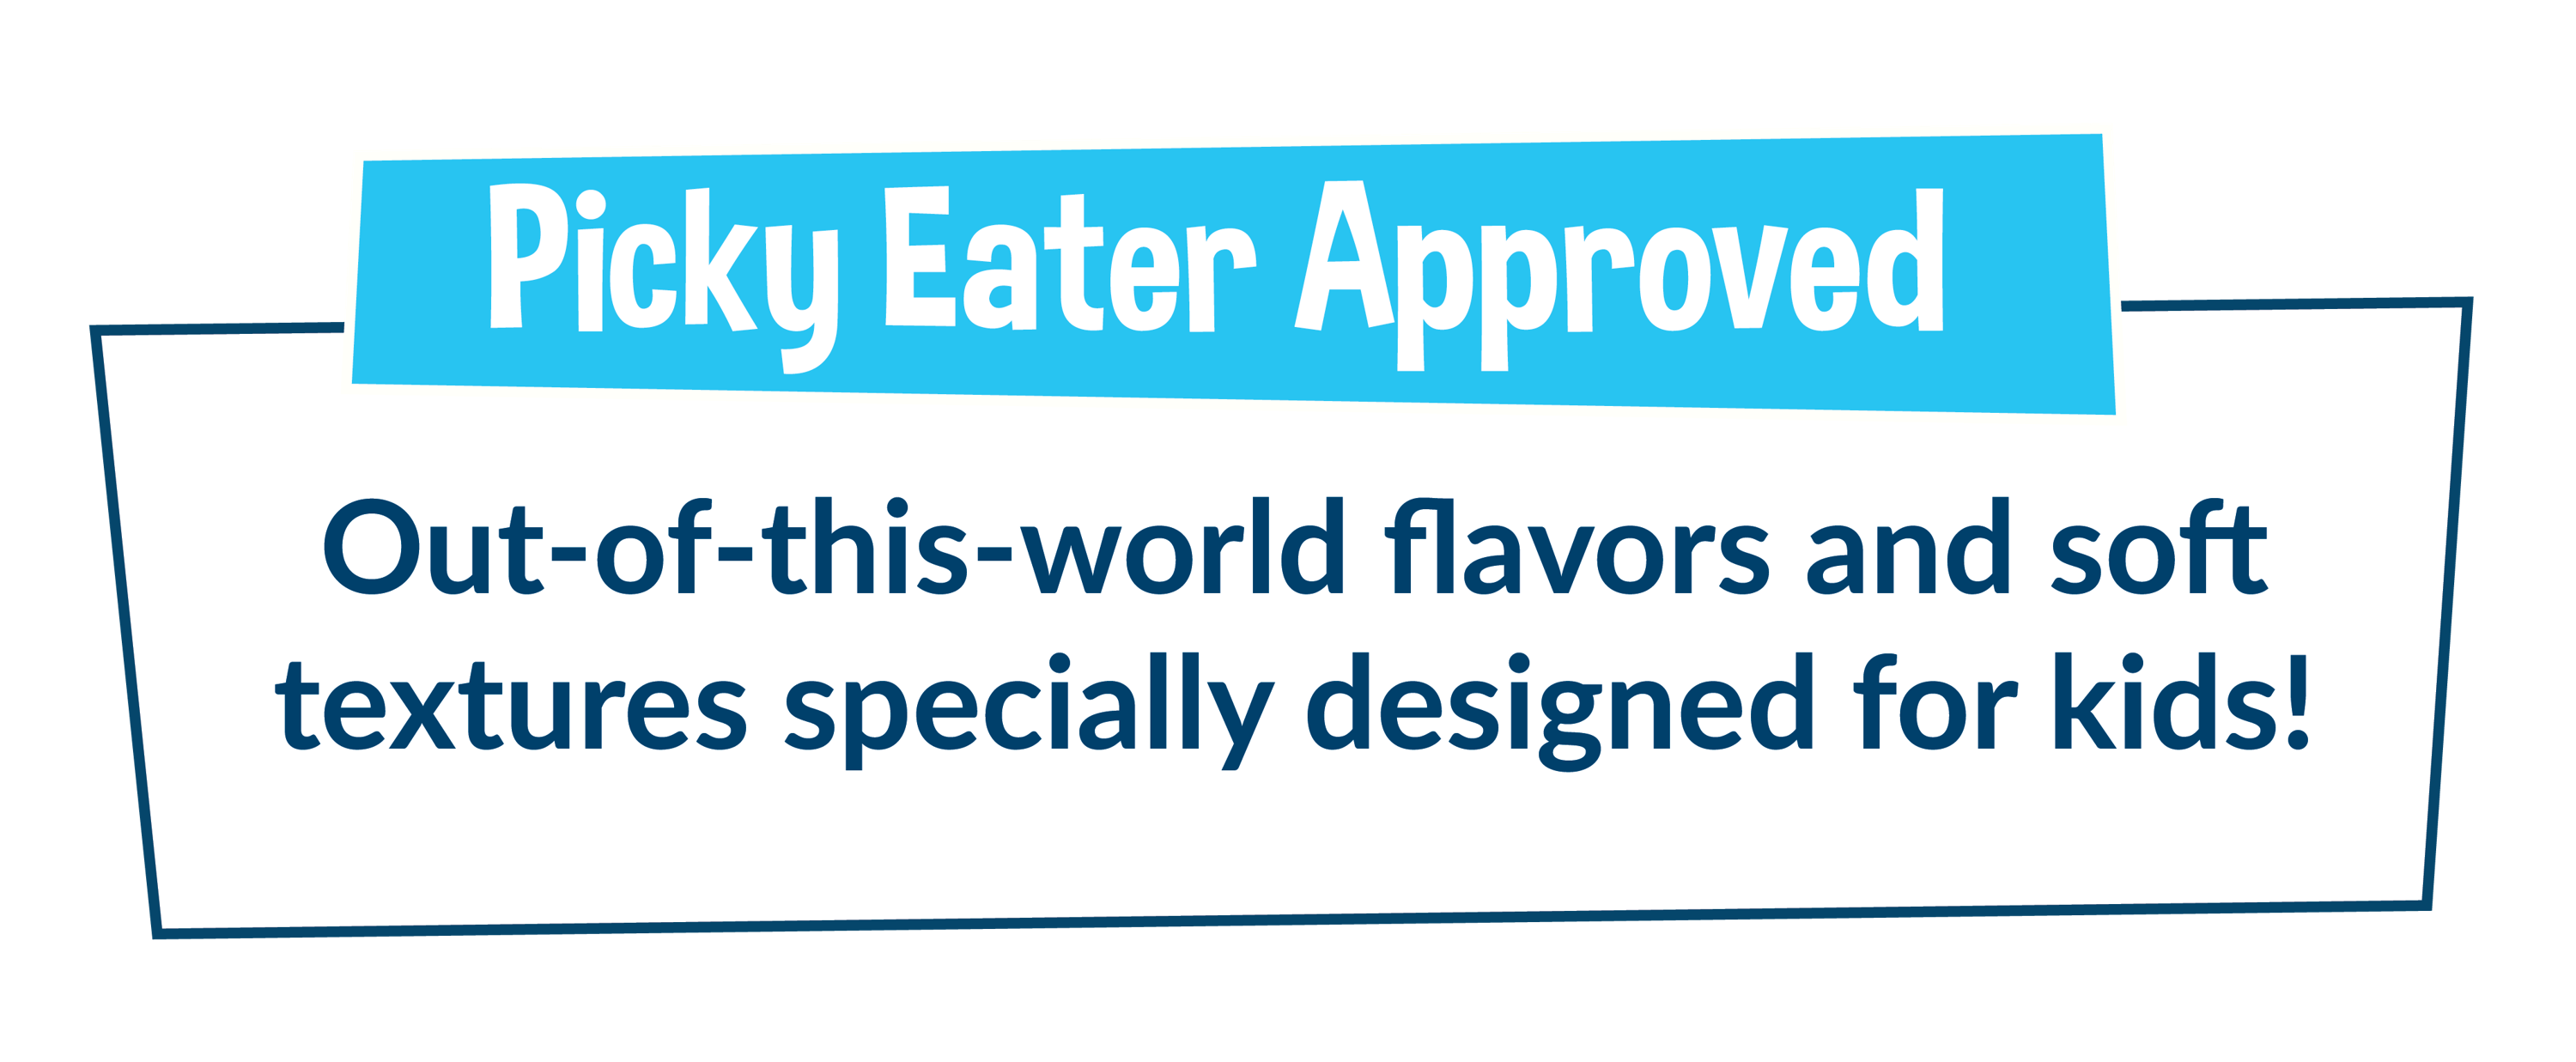 Picky Eater Approved!